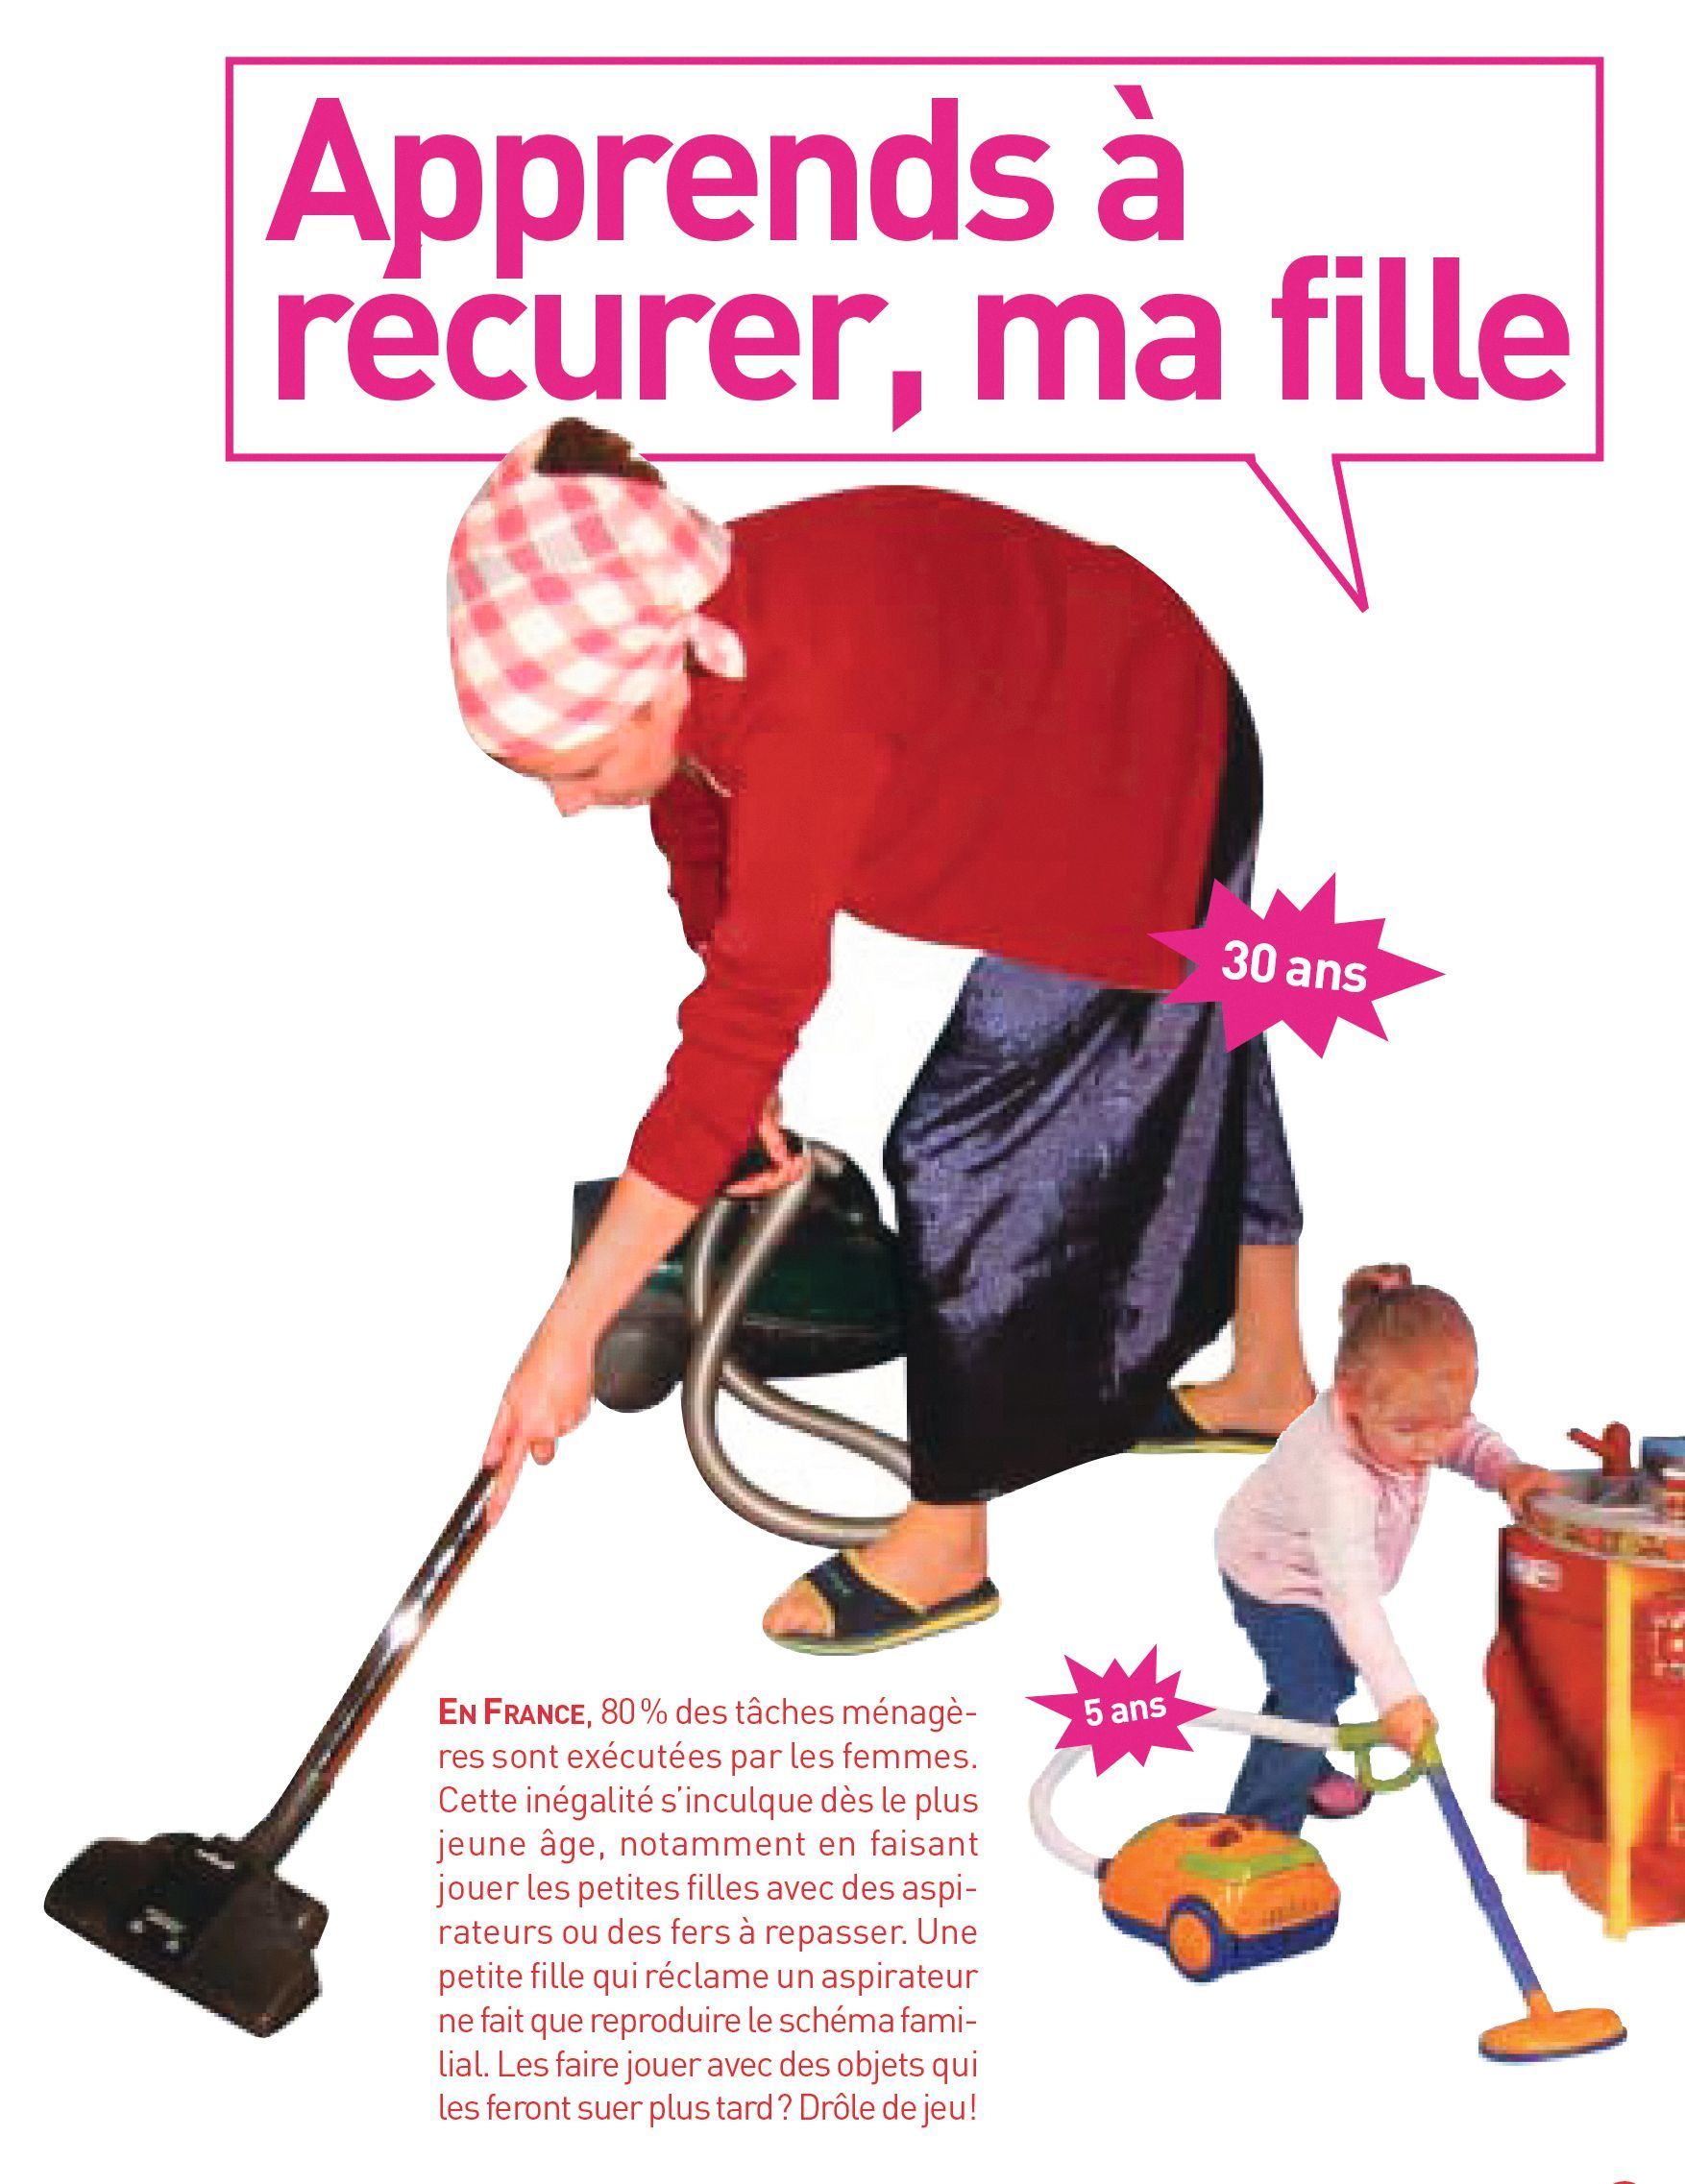 Collectif contre le publisexisme, Catalogue contre les jouets sexistes, 2007.